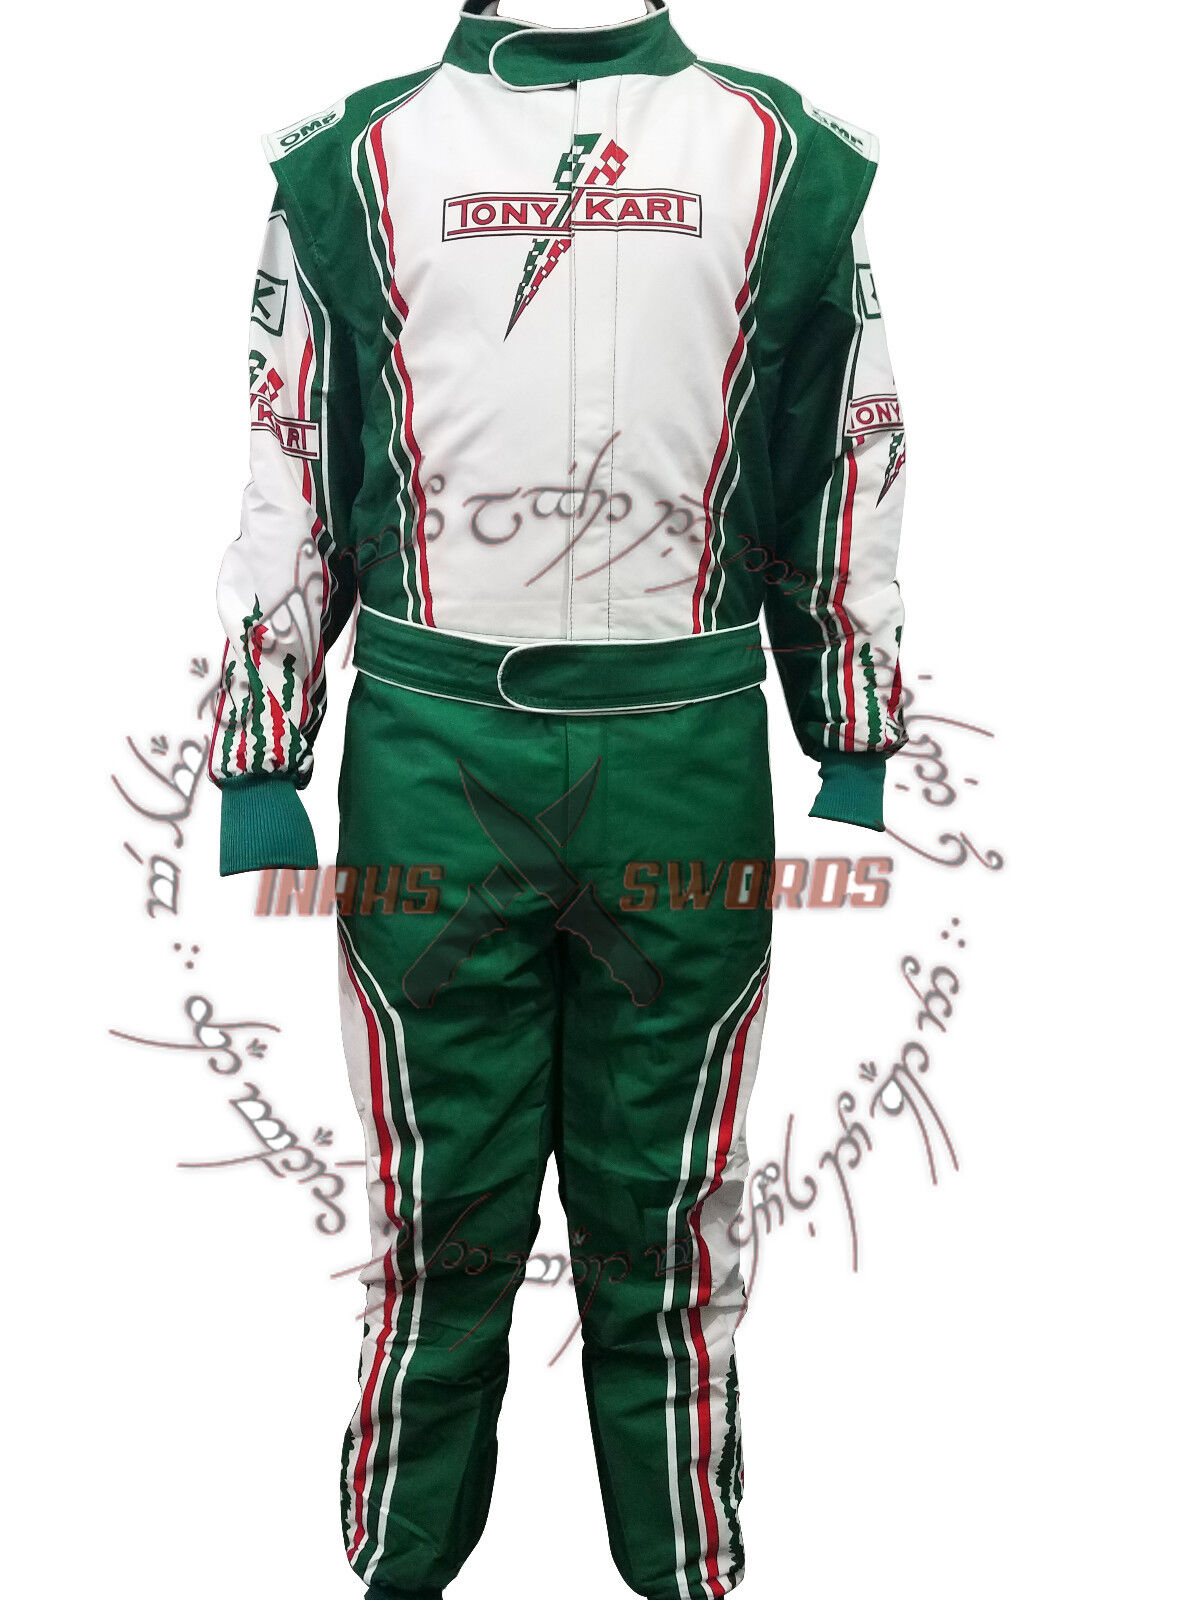 Tony Kart racing suit CIK  FIA level 2, all Sizes Available  new branded